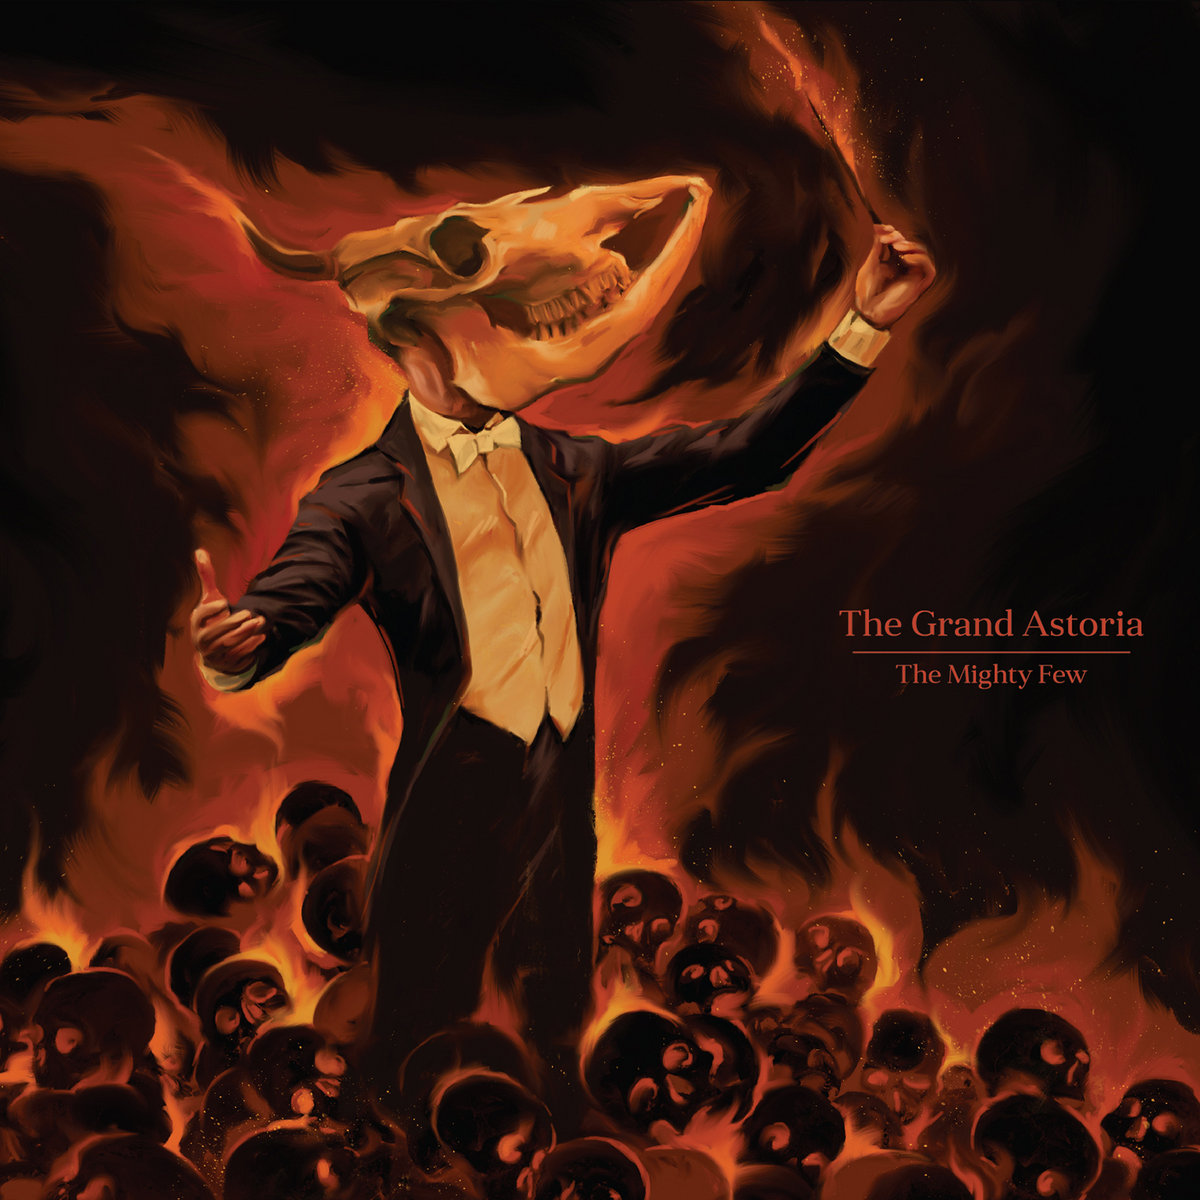 The Grand Astoria - The Mighty Few